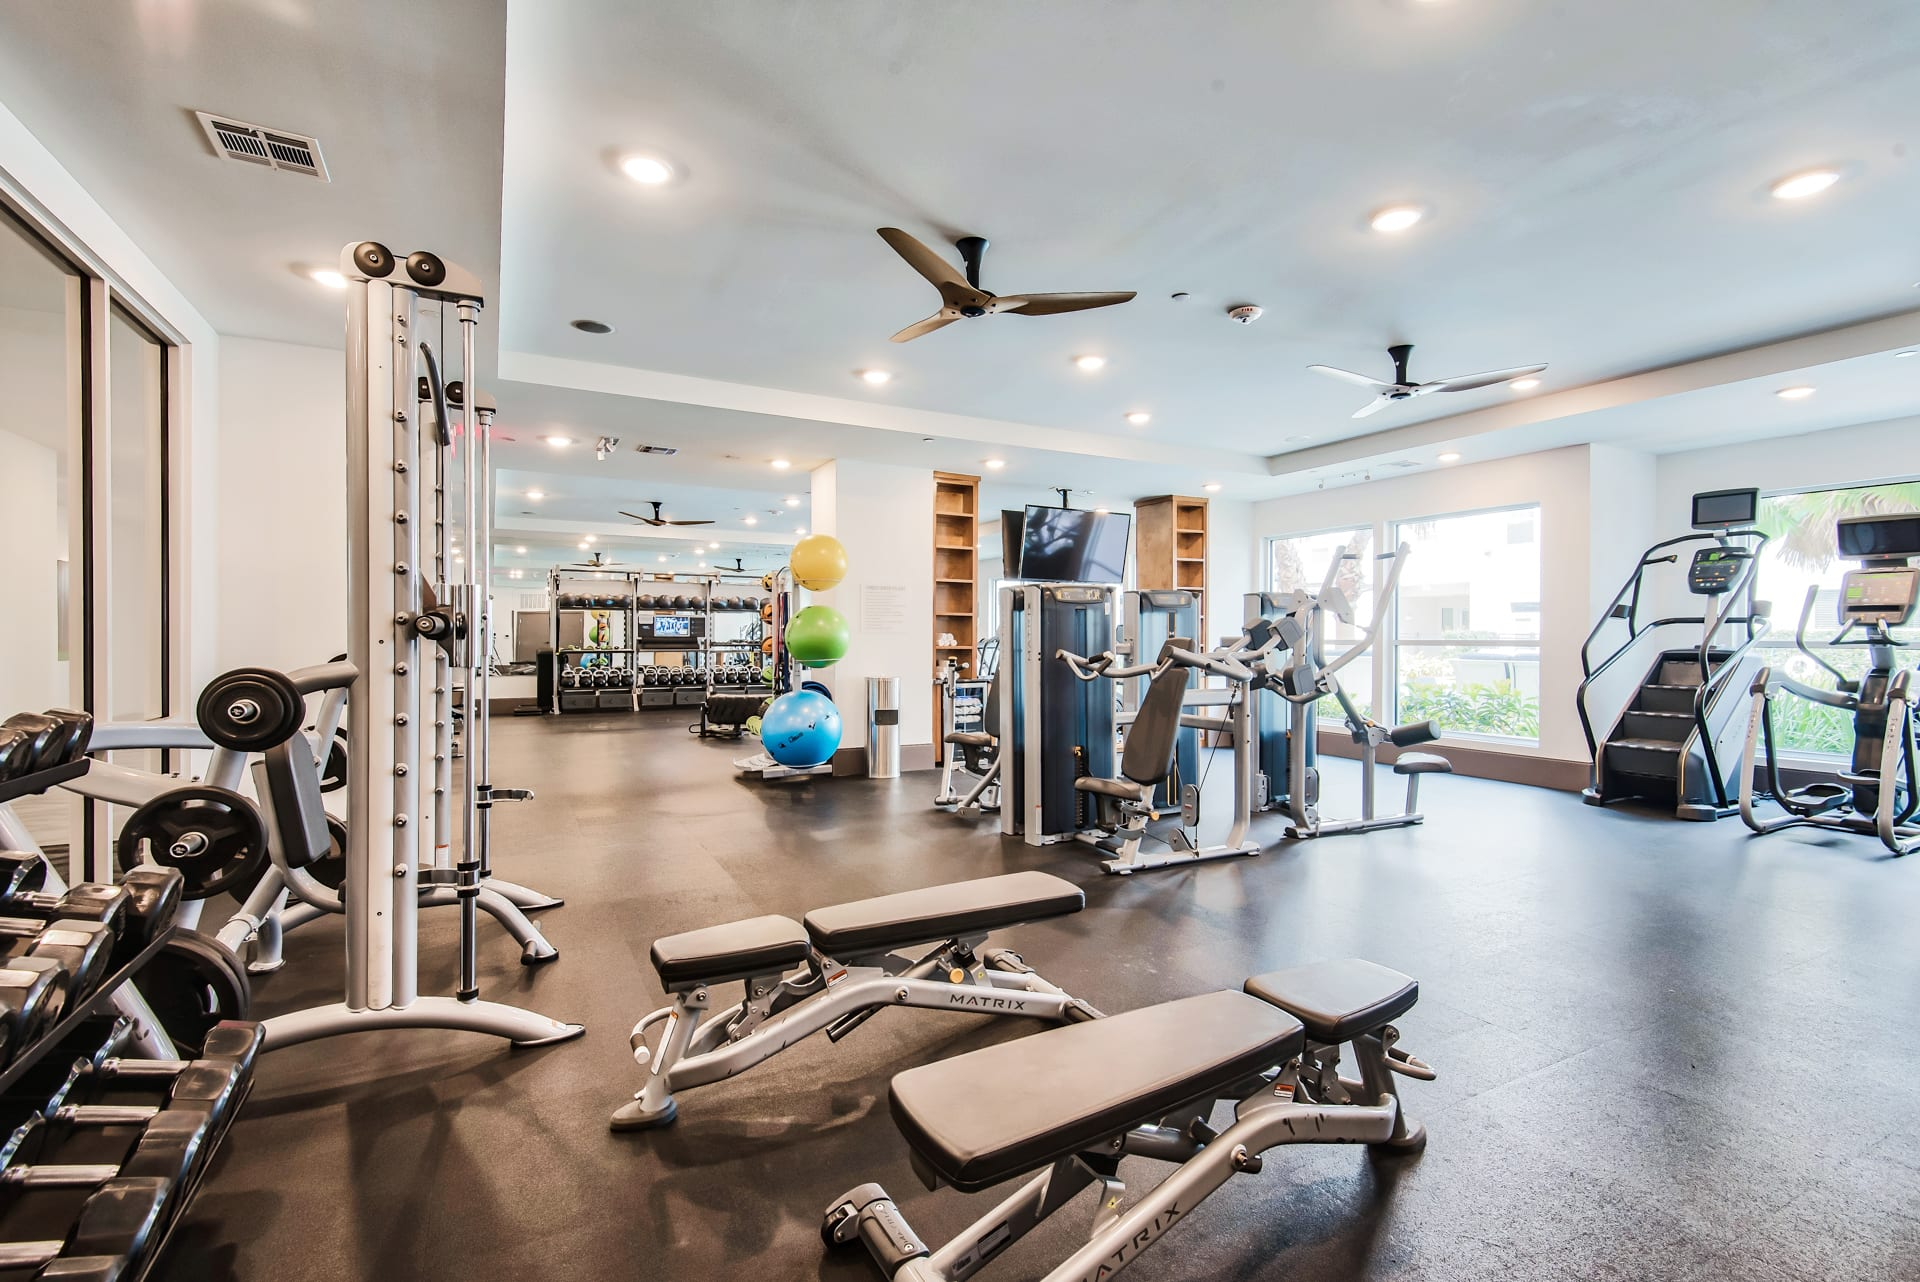 Fitness center at Windsor Shepherd, TX, 77007